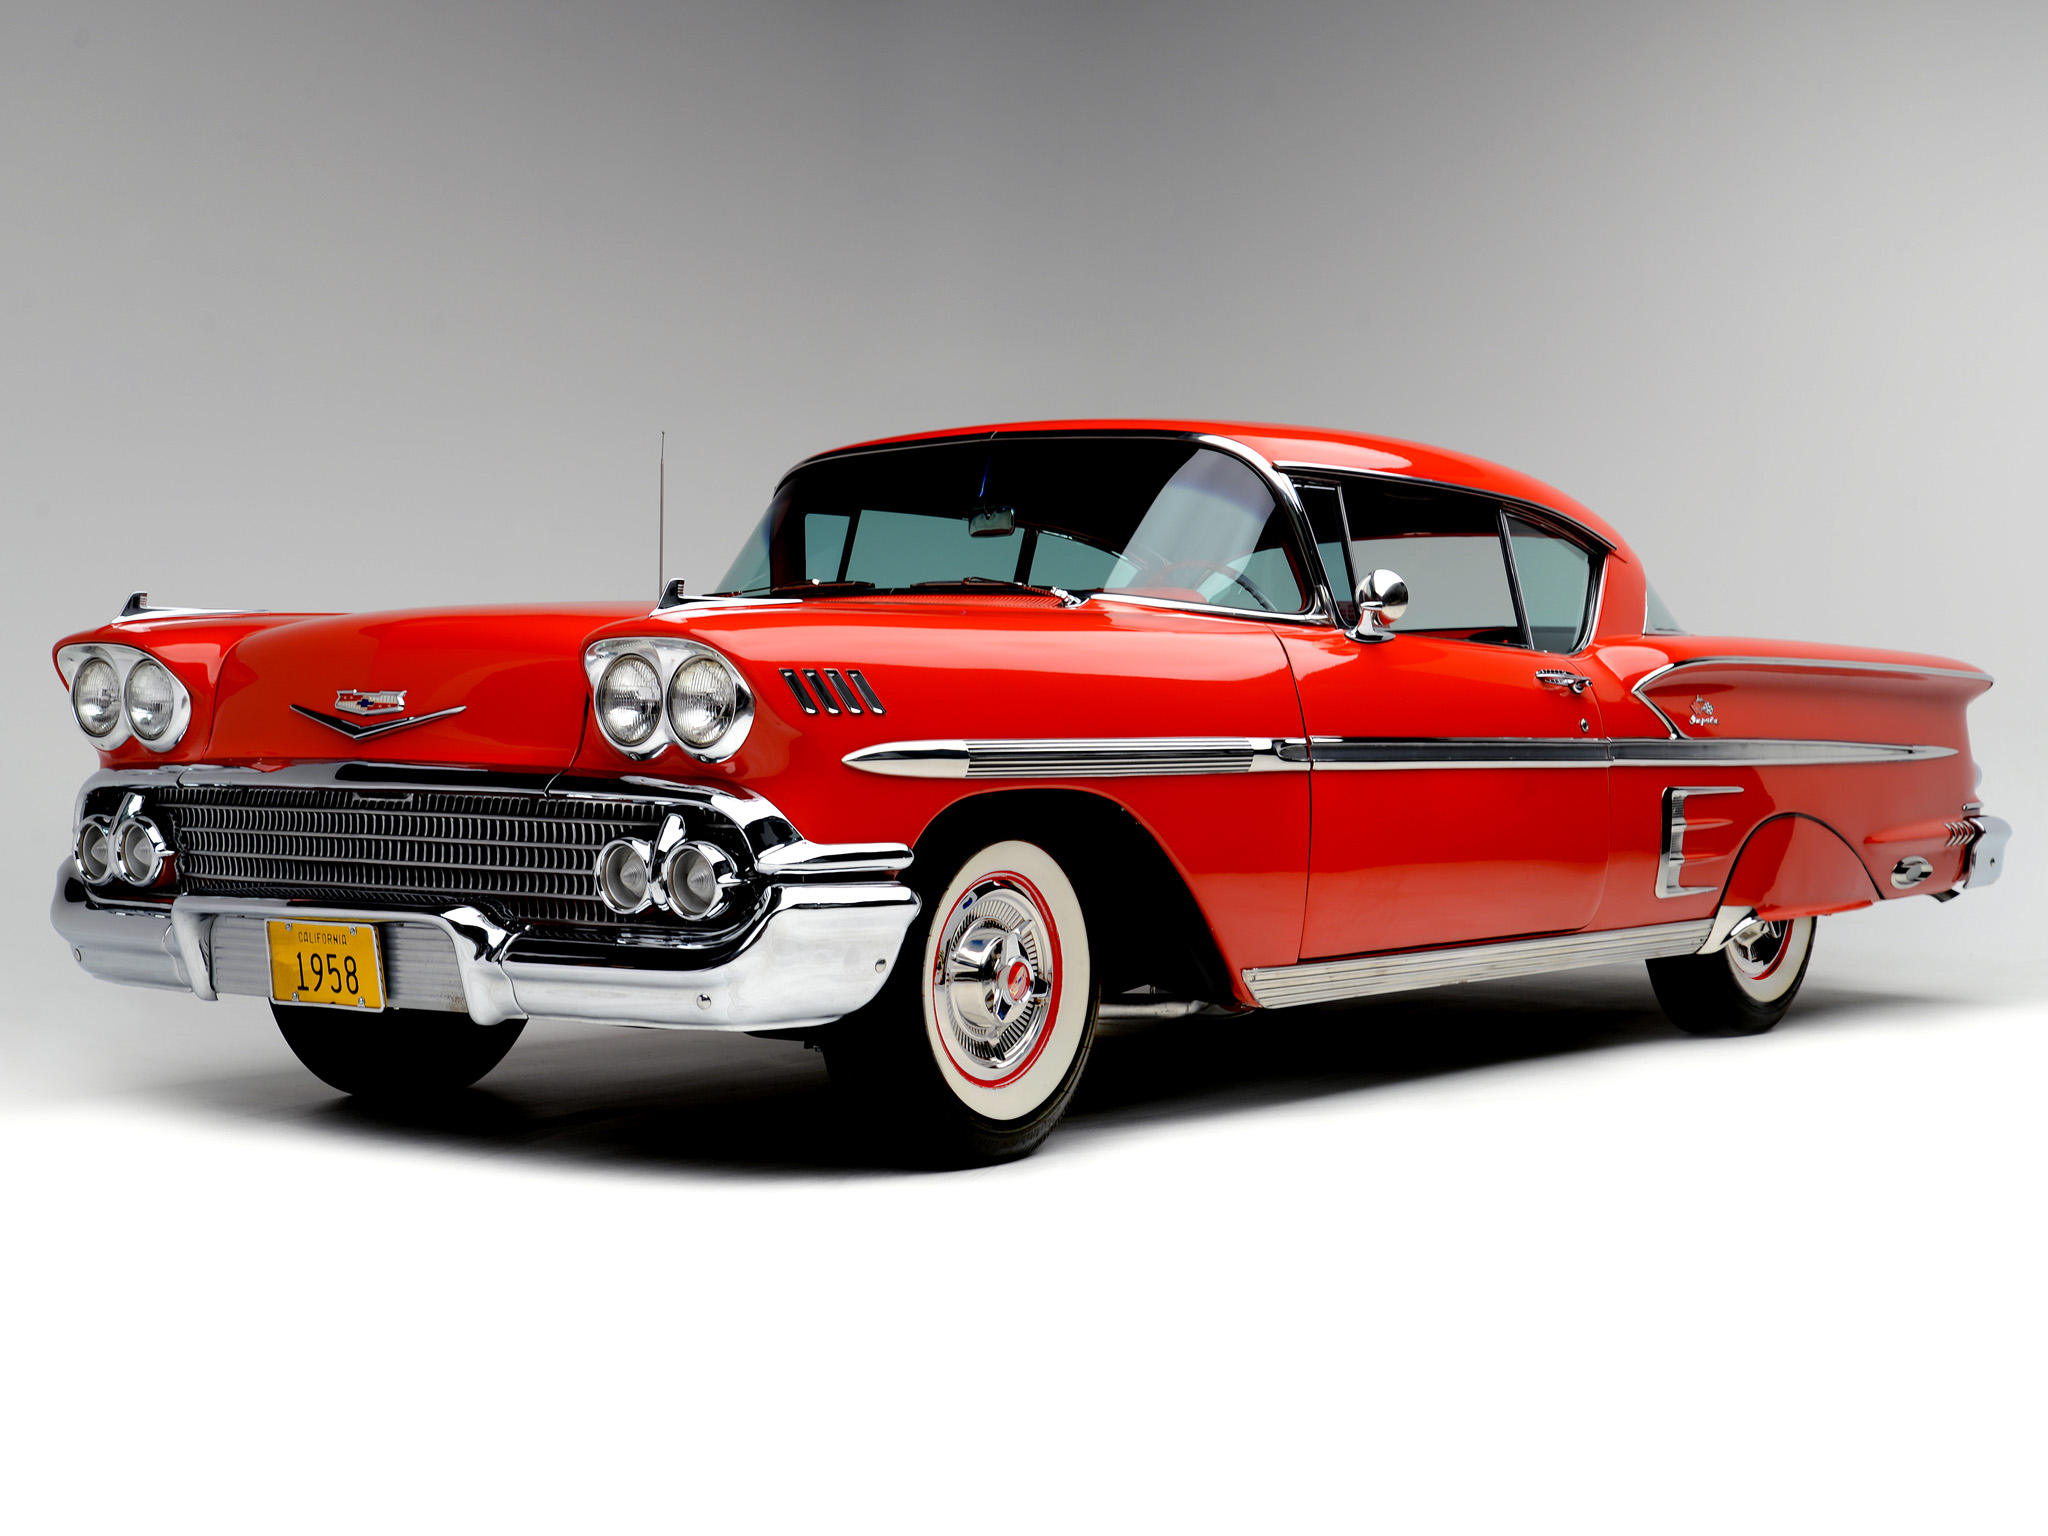 1958 Chevrolet Impala Pics, Vehicles Collection